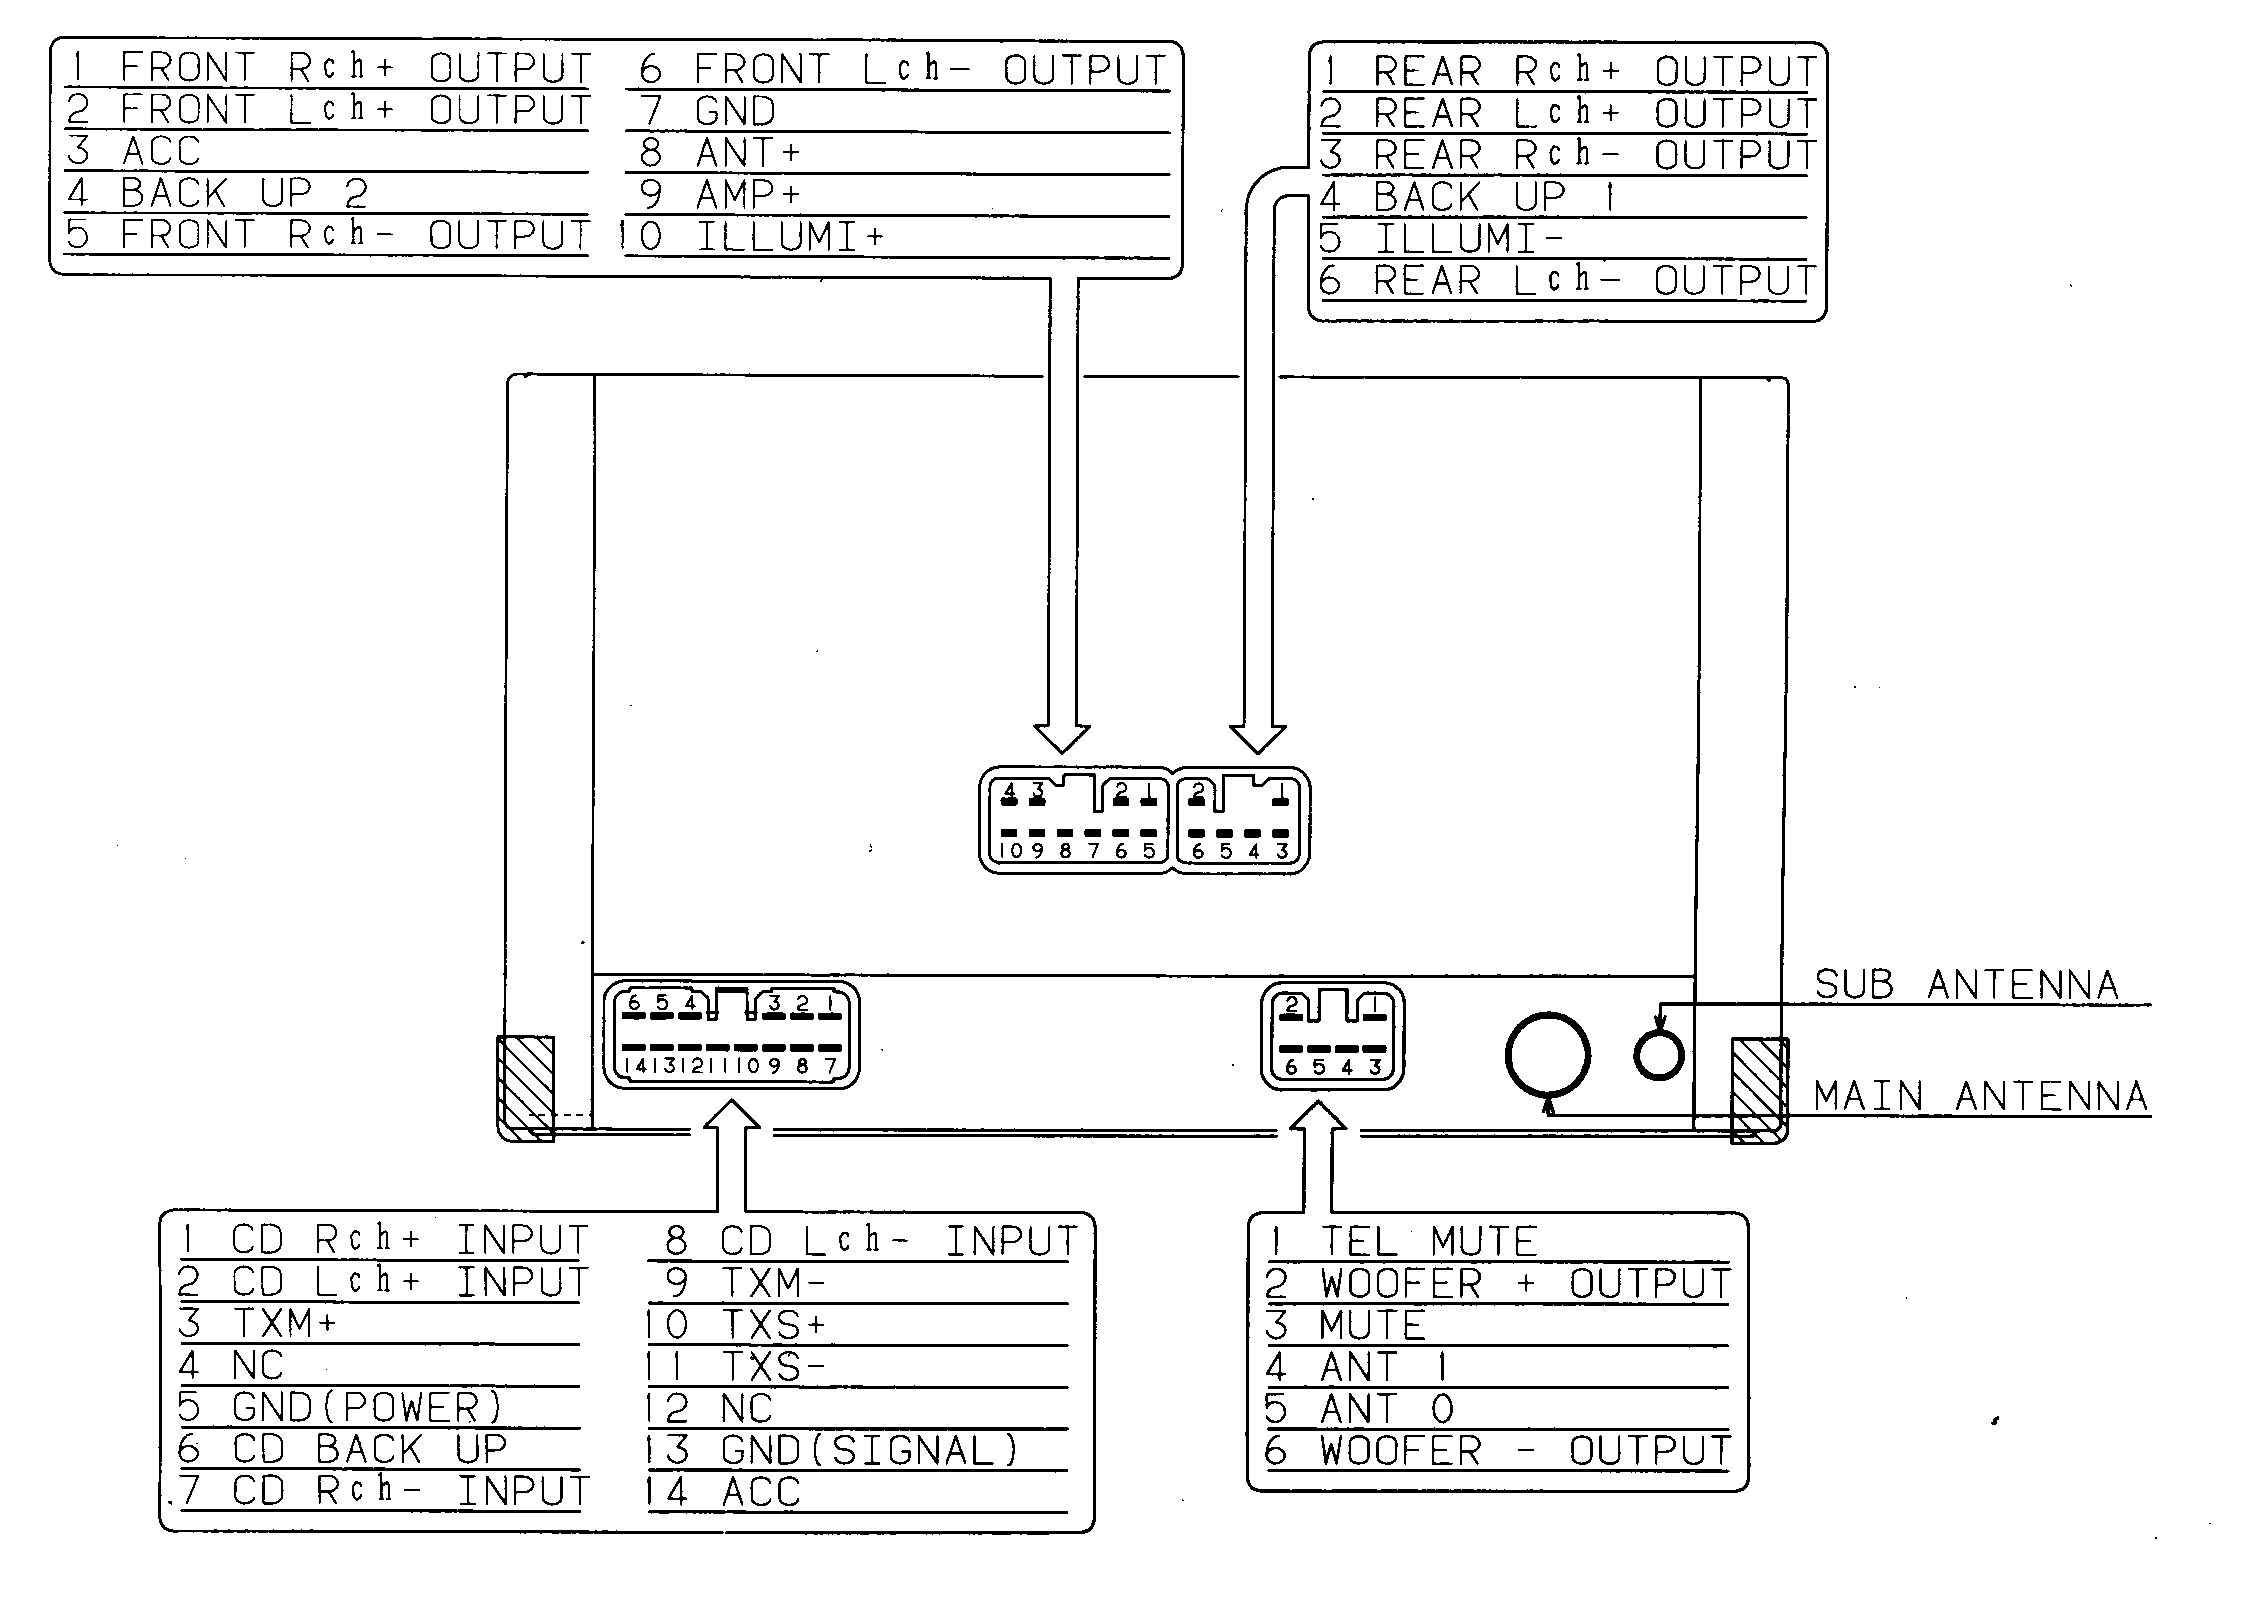 WireHarnessLexus121001 spartan 300 wire diagram on spartan images free download wiring henry j wiring diagram at crackthecode.co